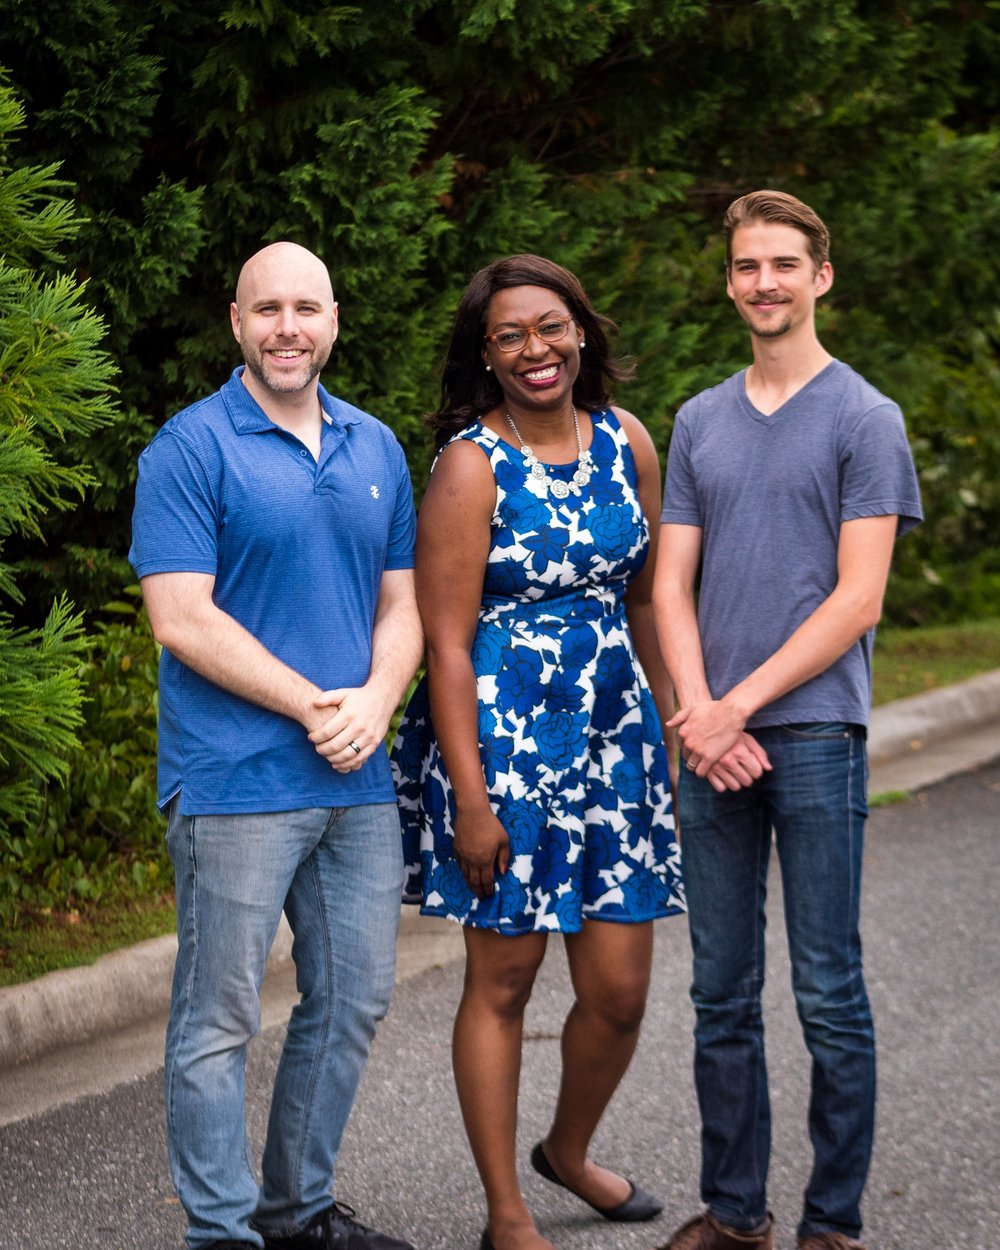 From Left to Right: Joshua Delivuk, LaShonda Delivuk & Thomas Fisher